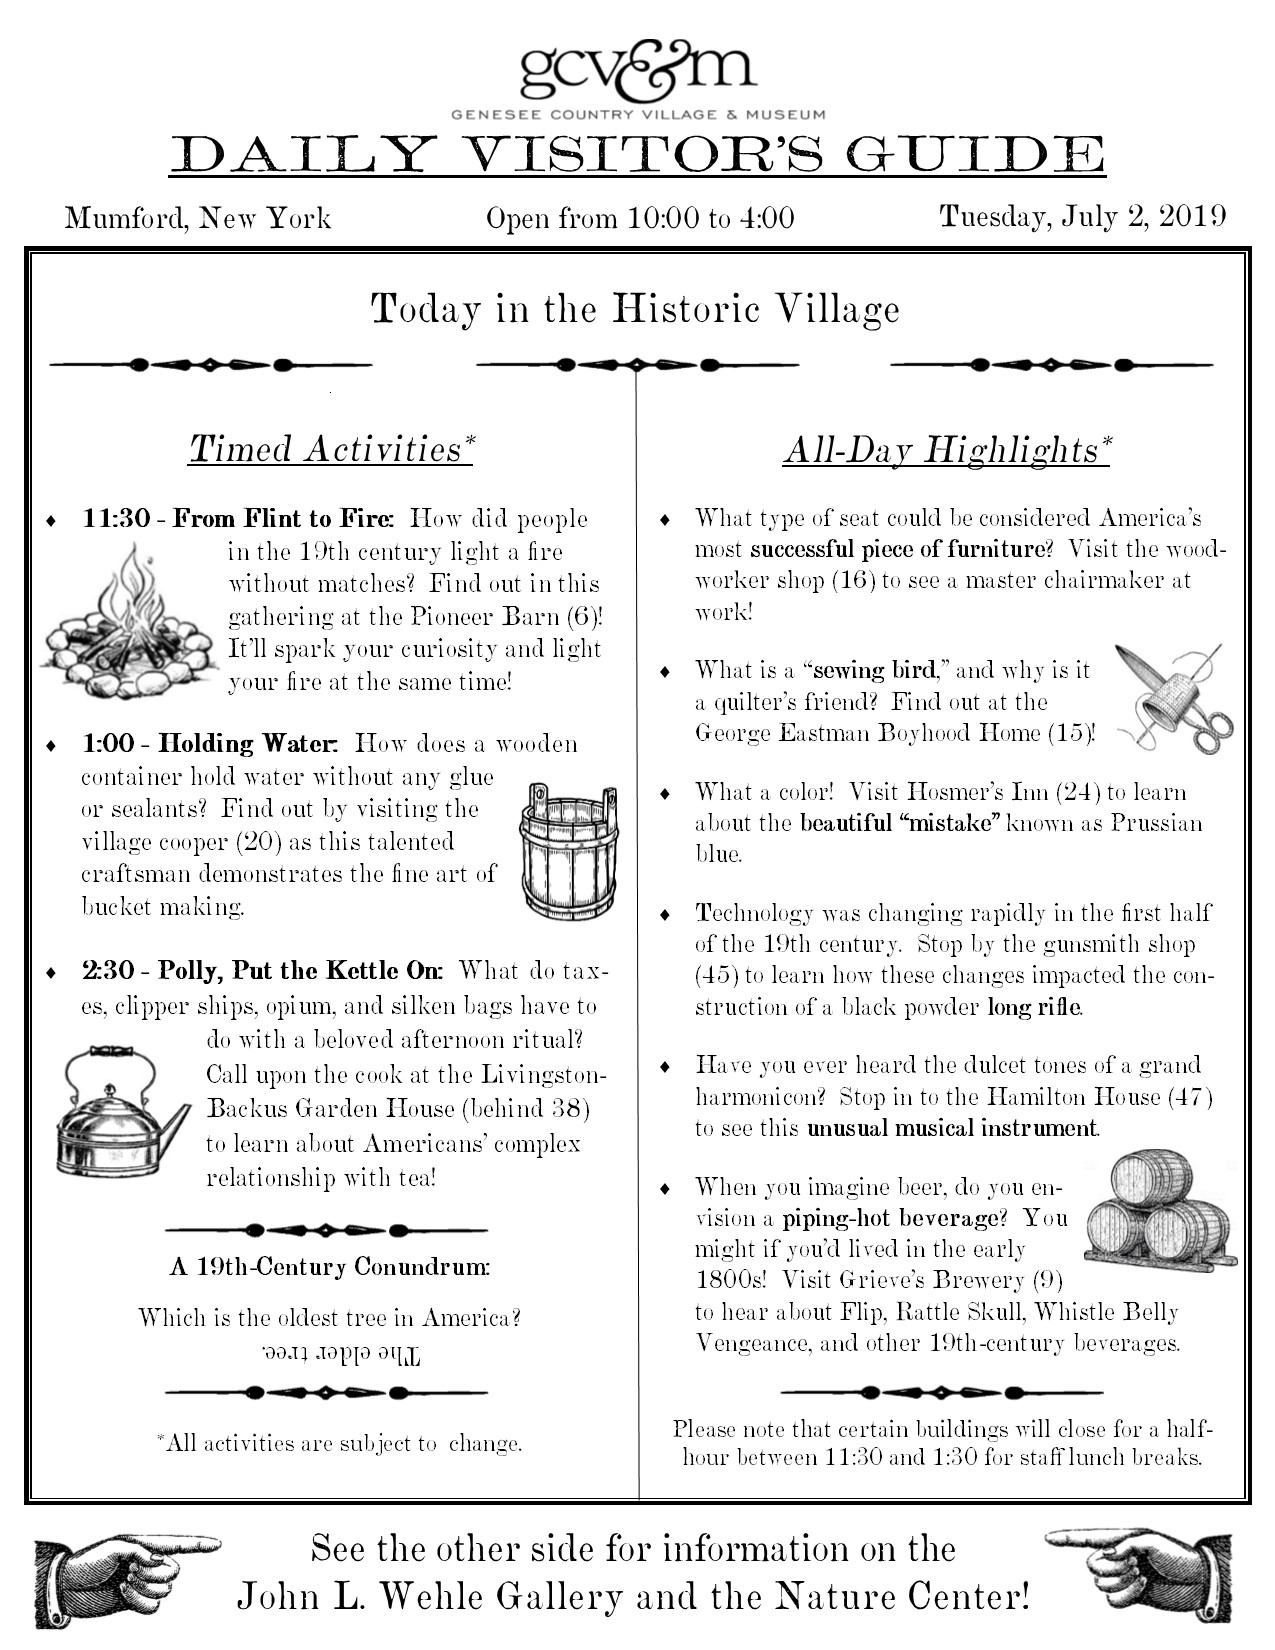 What's Happening today - Tuesday, July 2 | Genesee Country Village